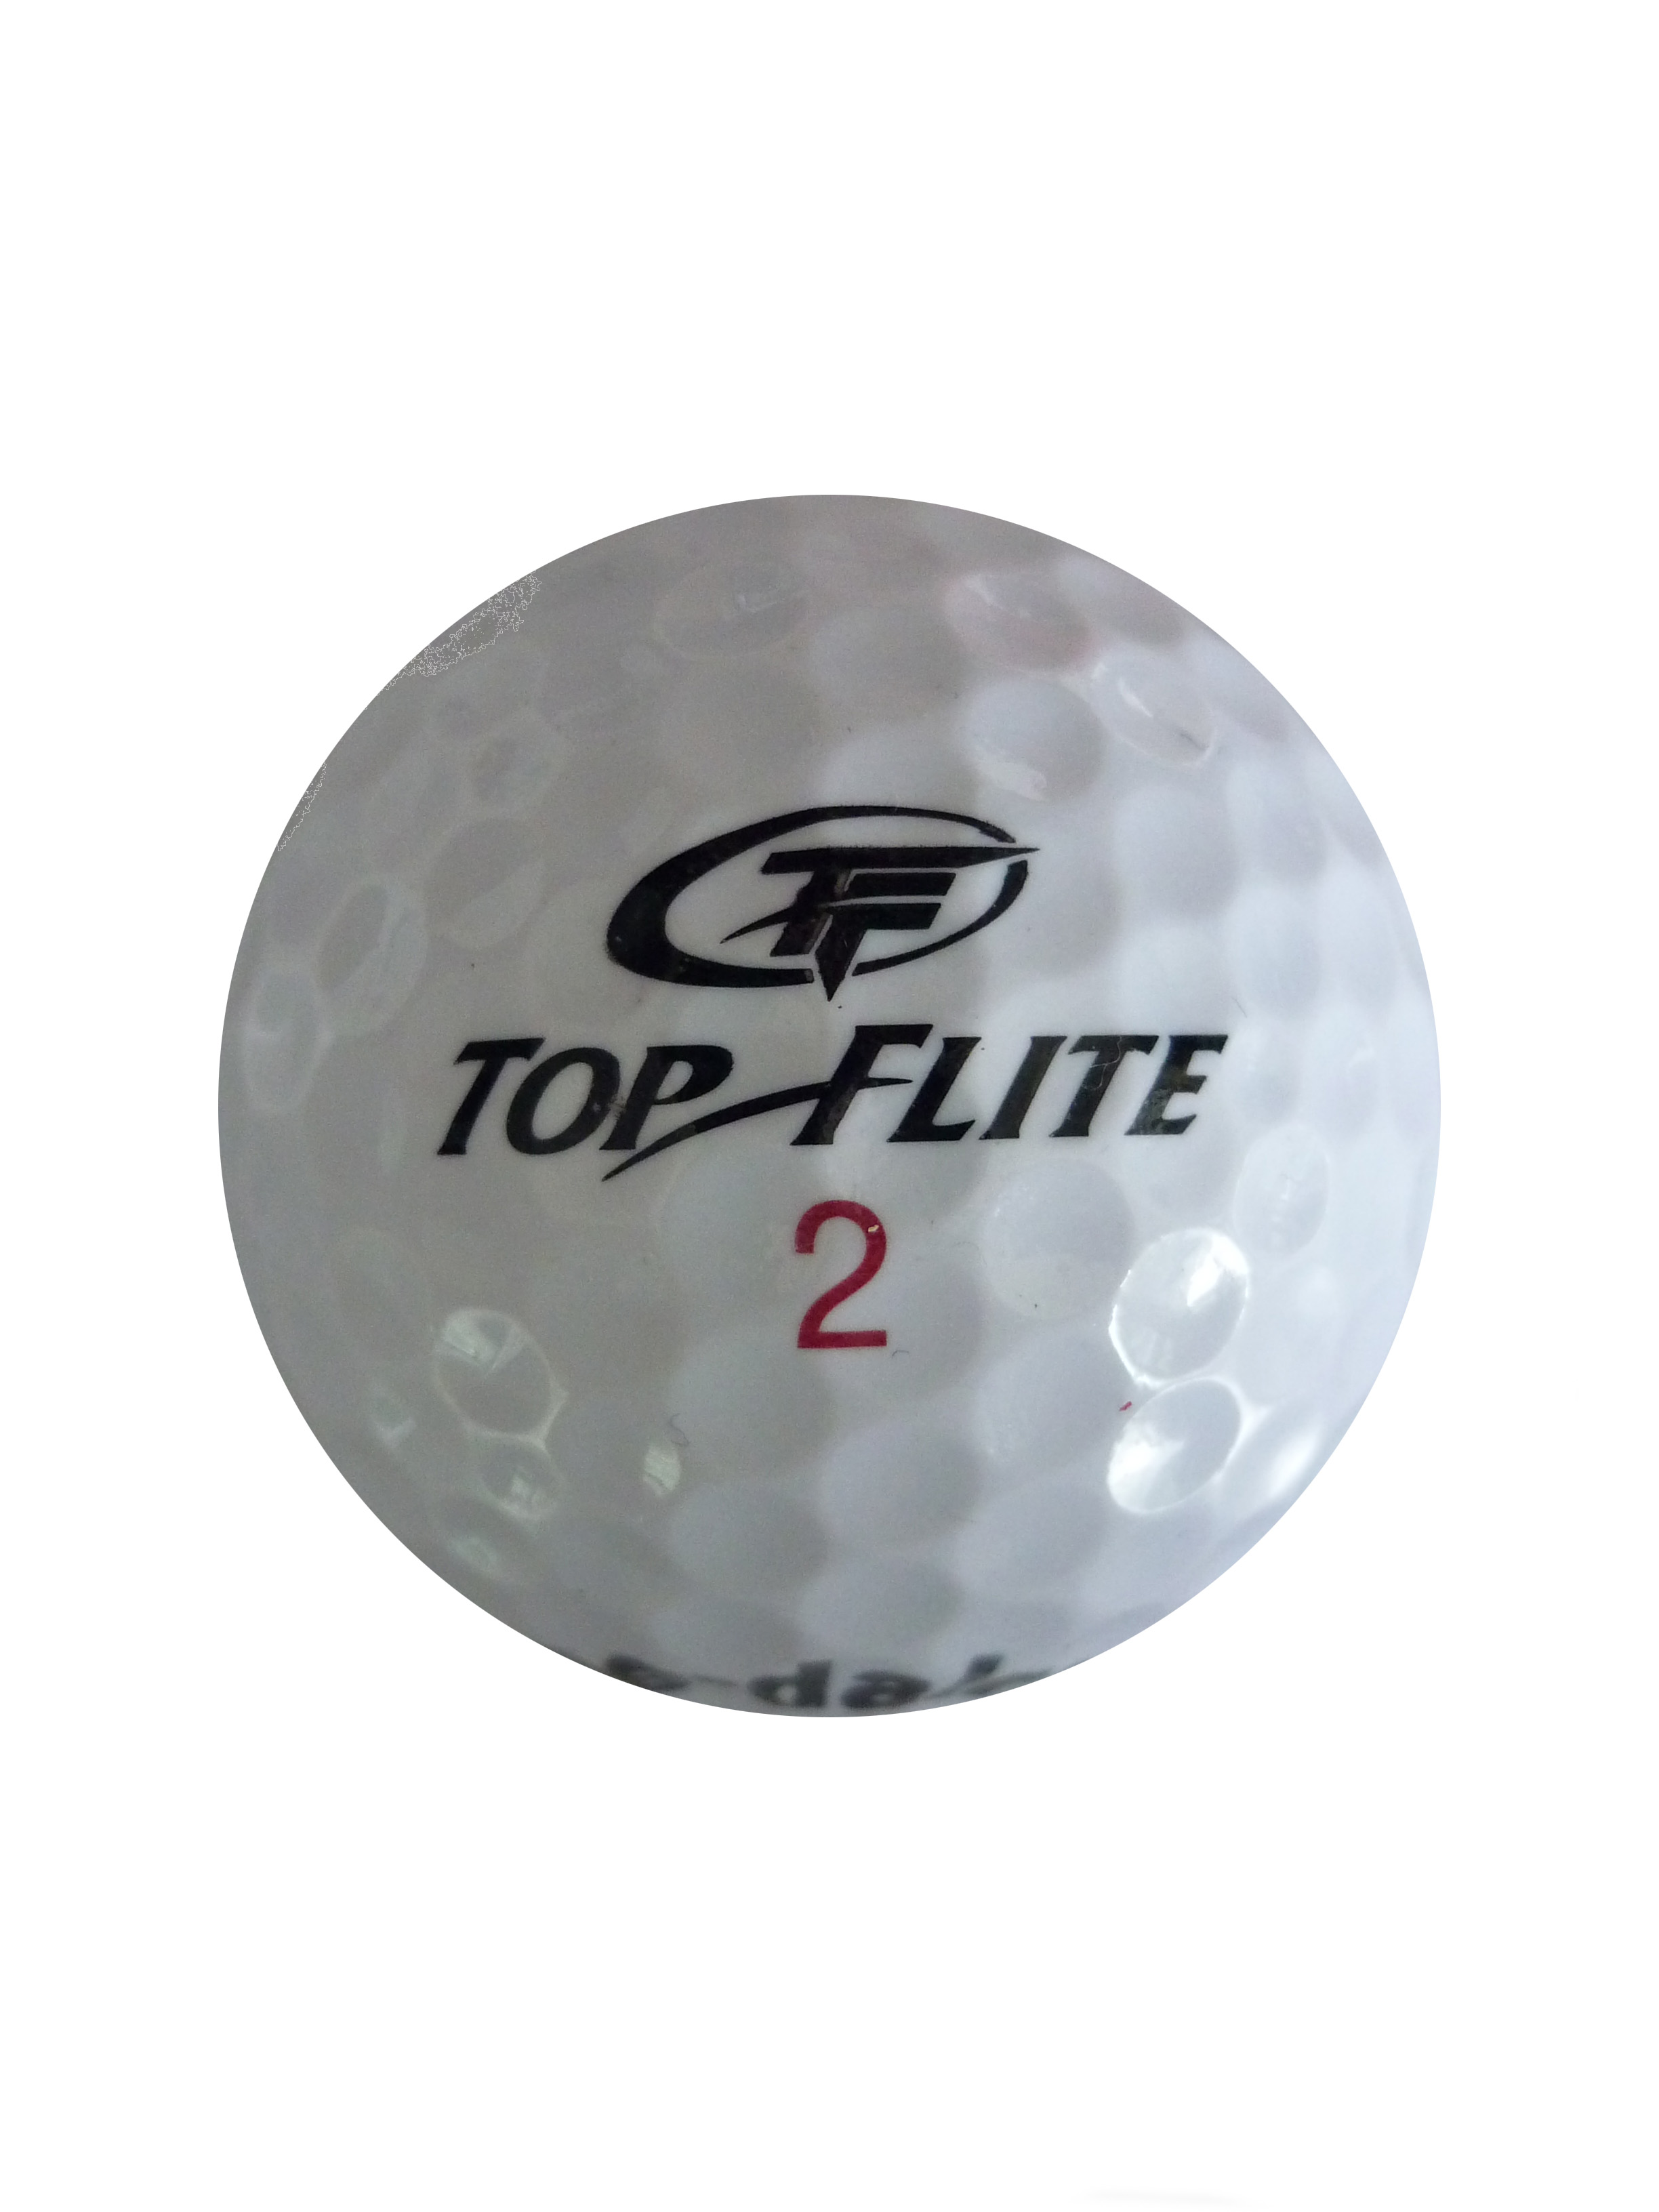 Ball with Top Life logo - rear view